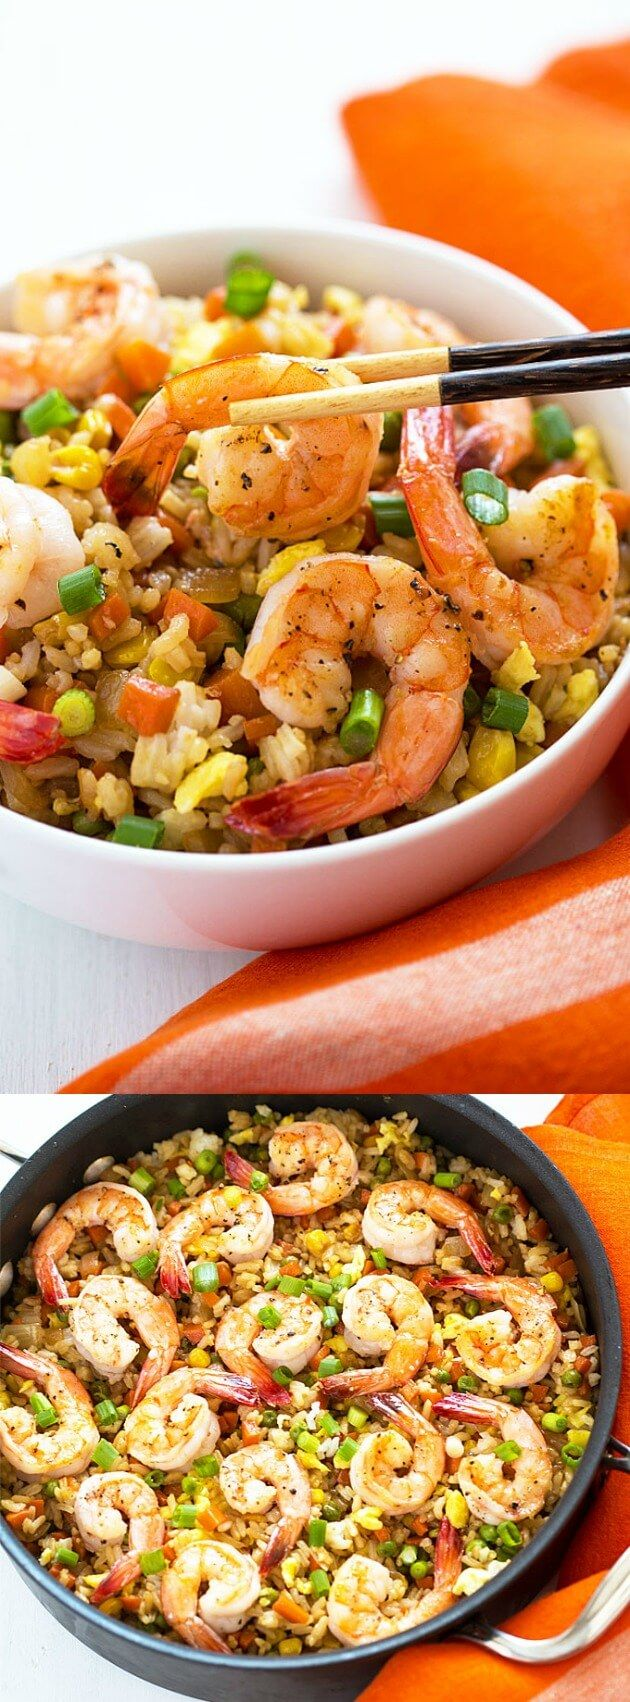 This Shrimp Fried Rice from The Blond Cook is one of the best seafood recipes! The perfectly seasoned fried rice is chock full of juicy shrimp and veggies!